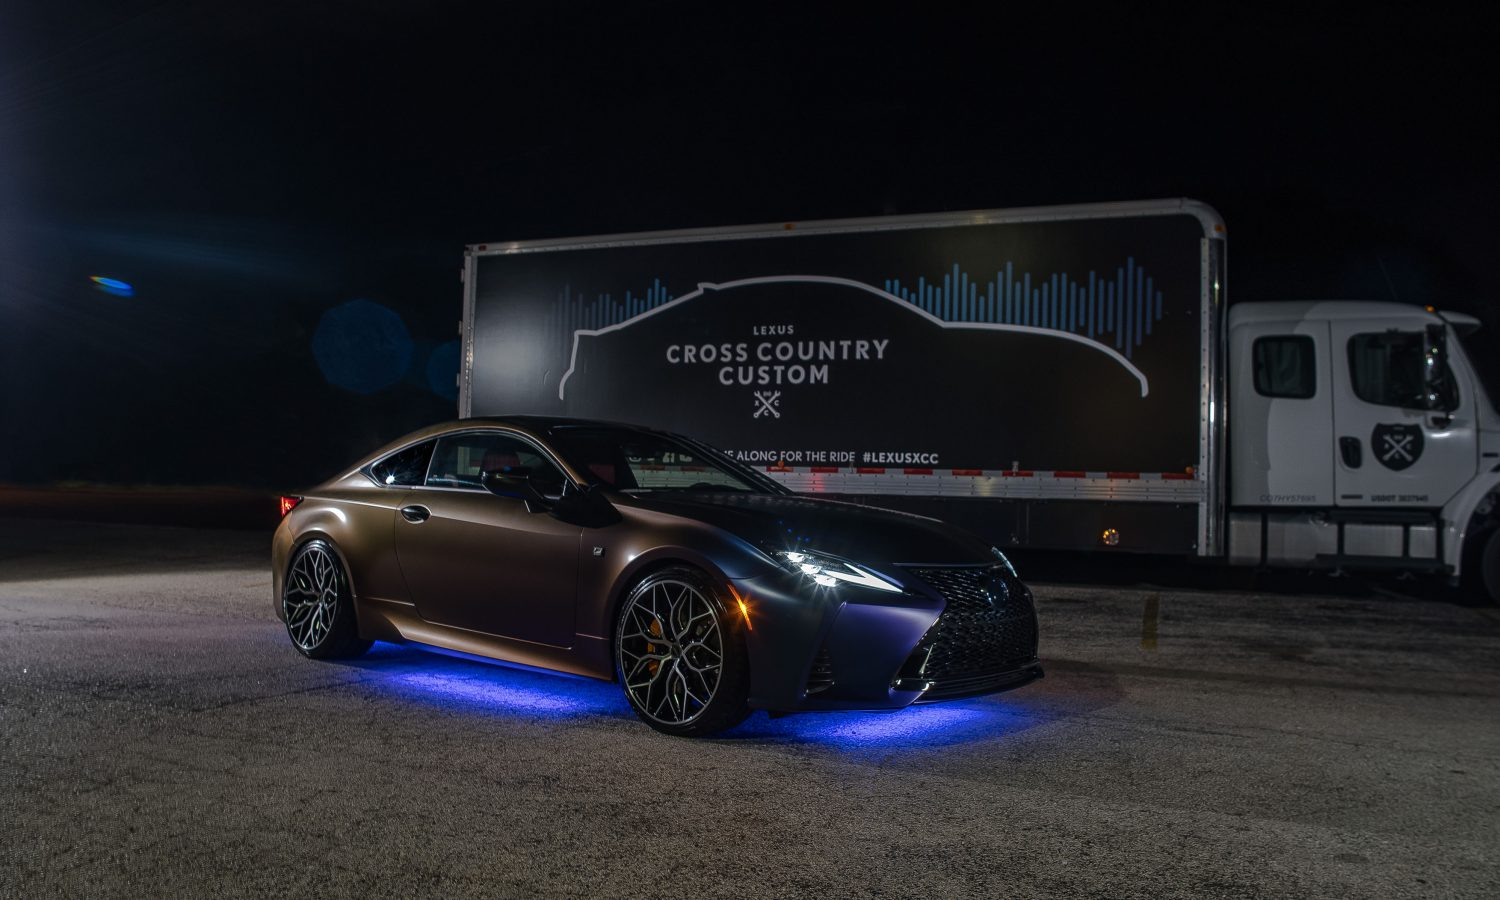 Lexus Media Guide for the 2018 SEMA Show